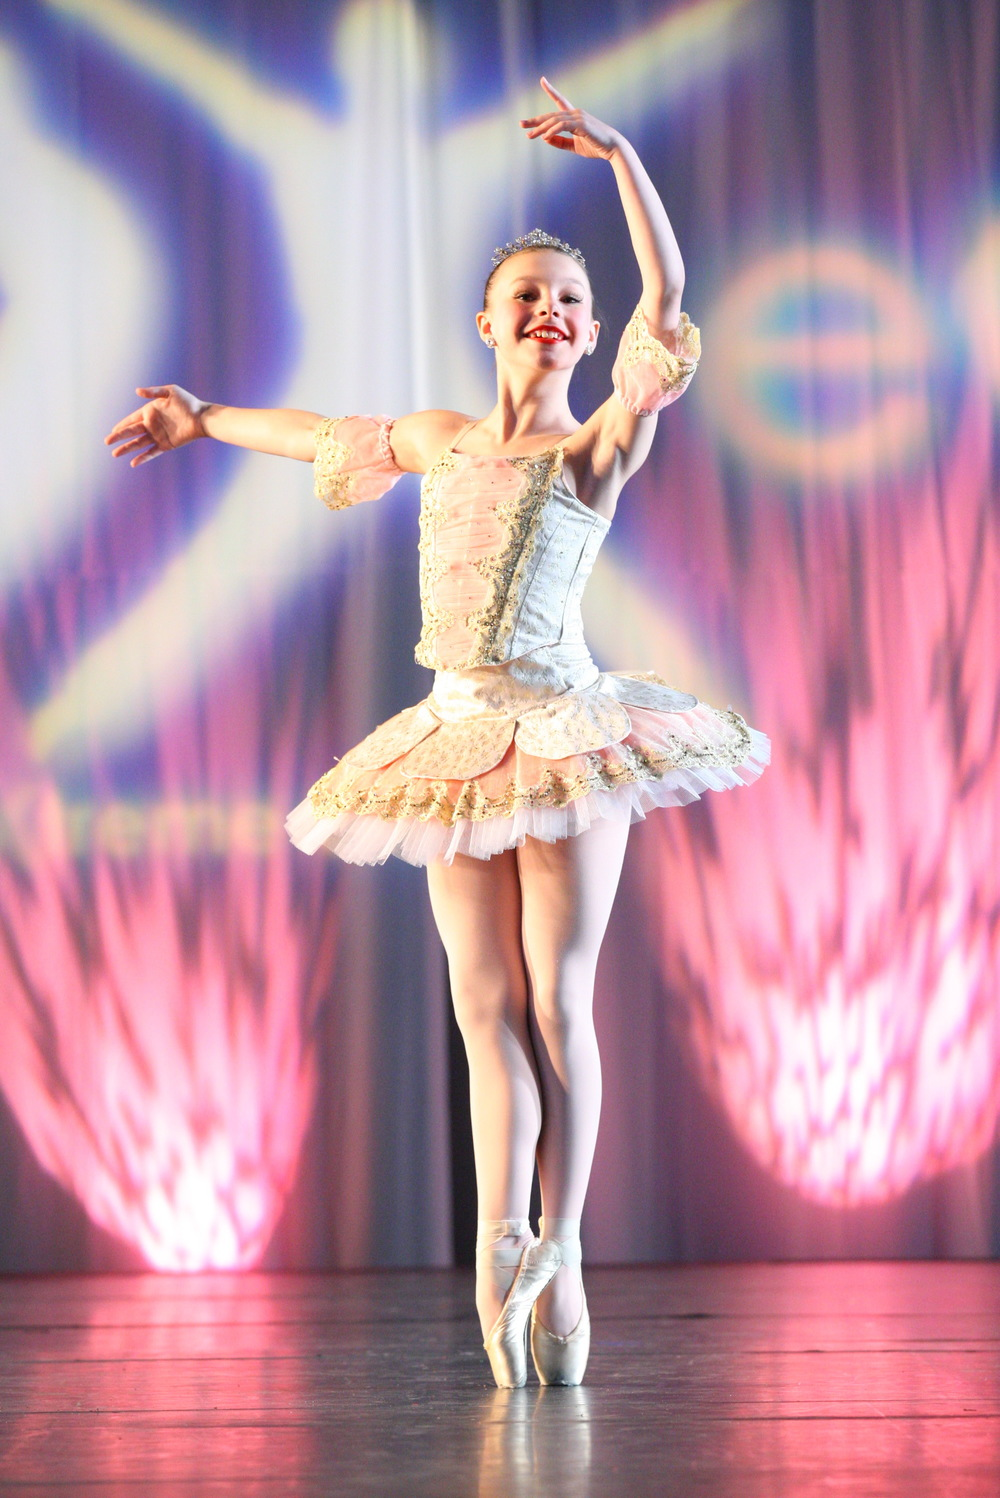 2013 - Olivia Vannucci from Summit Dance Shoppe